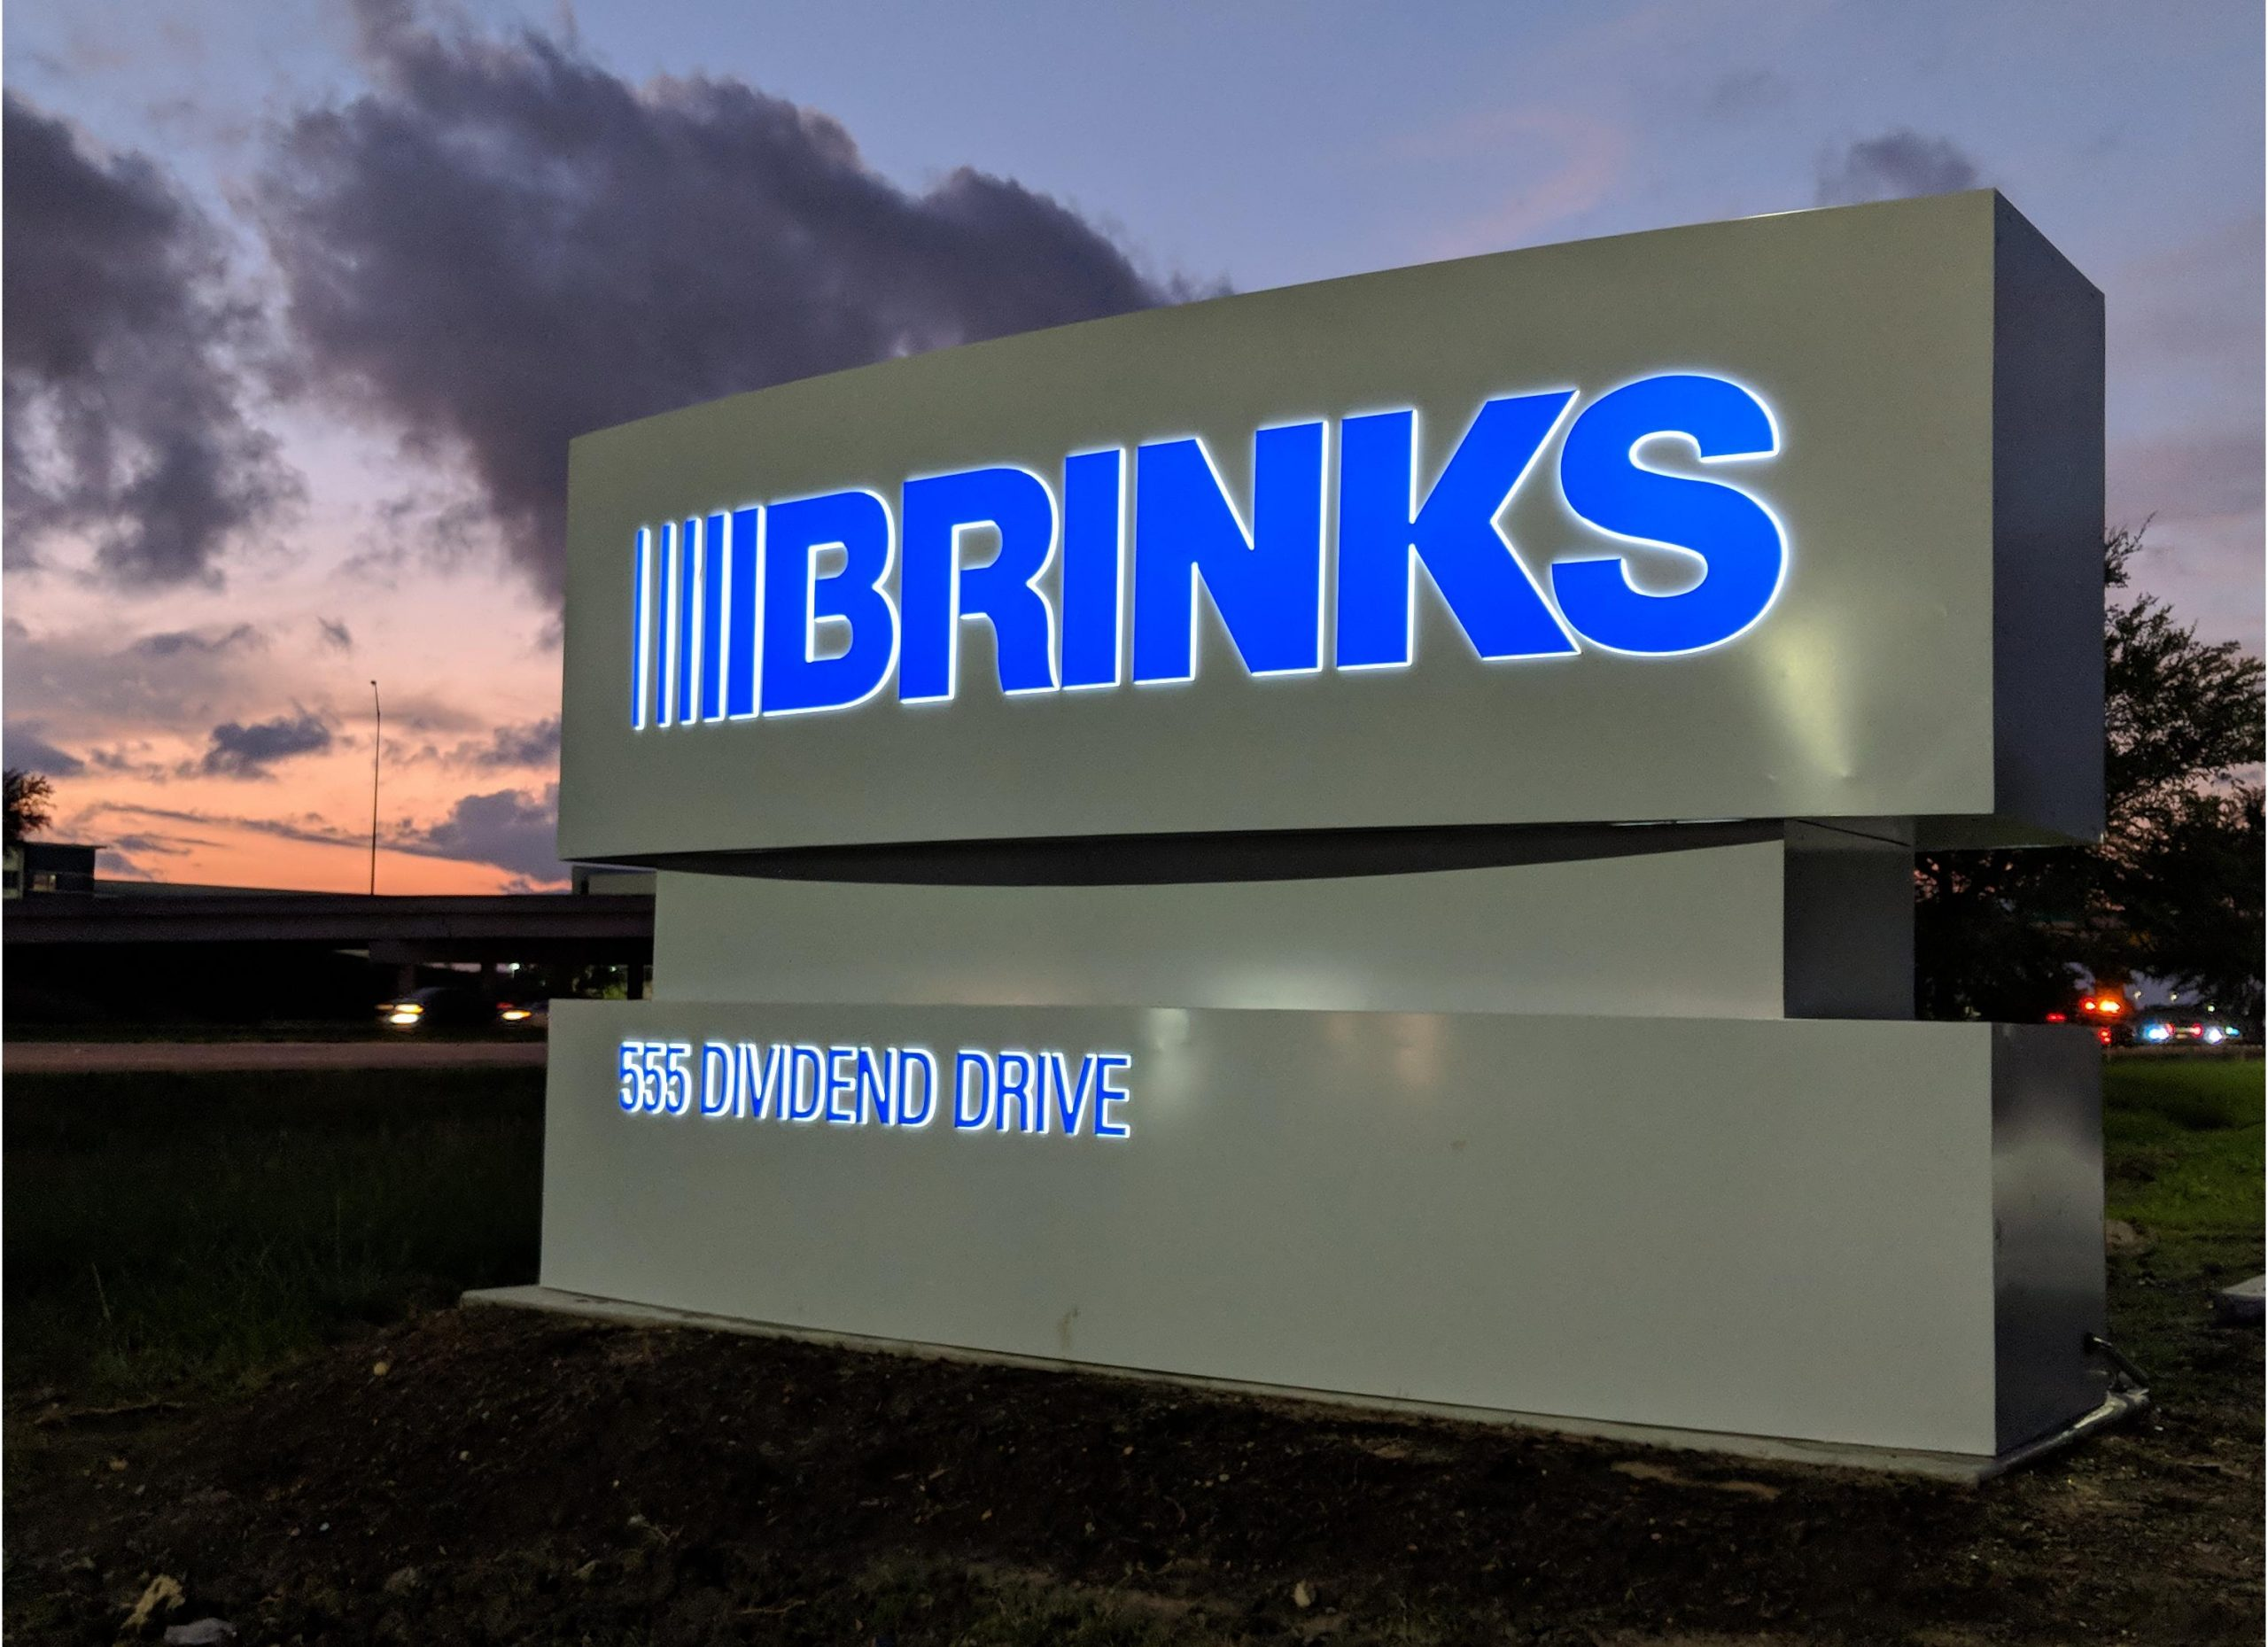 Fortune 500 Companies Brand Signage for Industry 5 1 Brinks at Twilight scaled